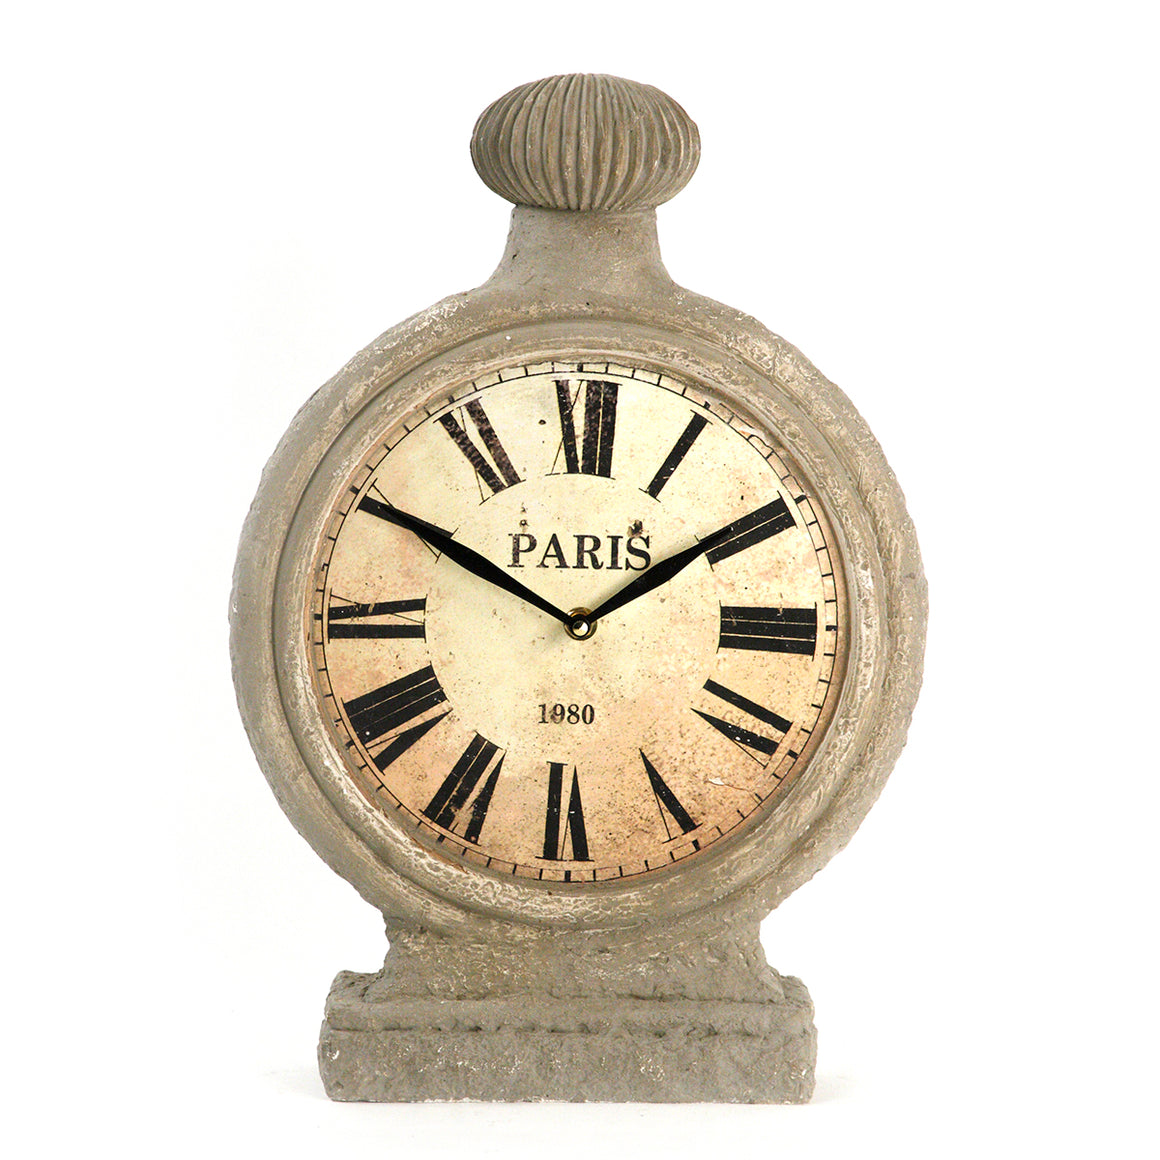 Paris Mantle Clock